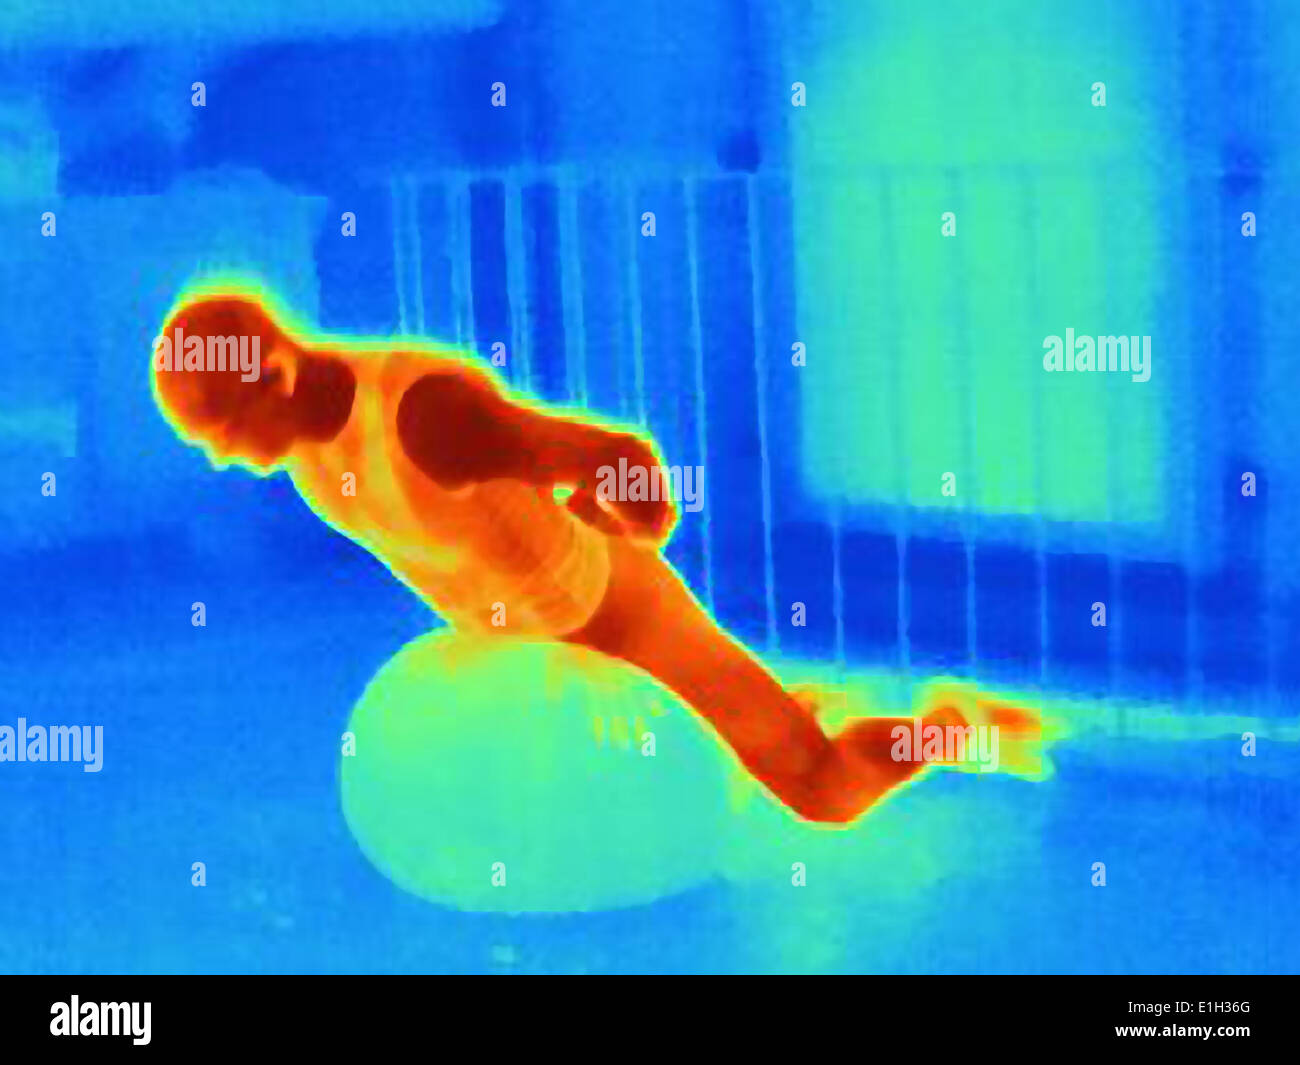 Thermal image of young male athlete training with exercise ball. The image shows the heat produced by the muscles - Stock Image